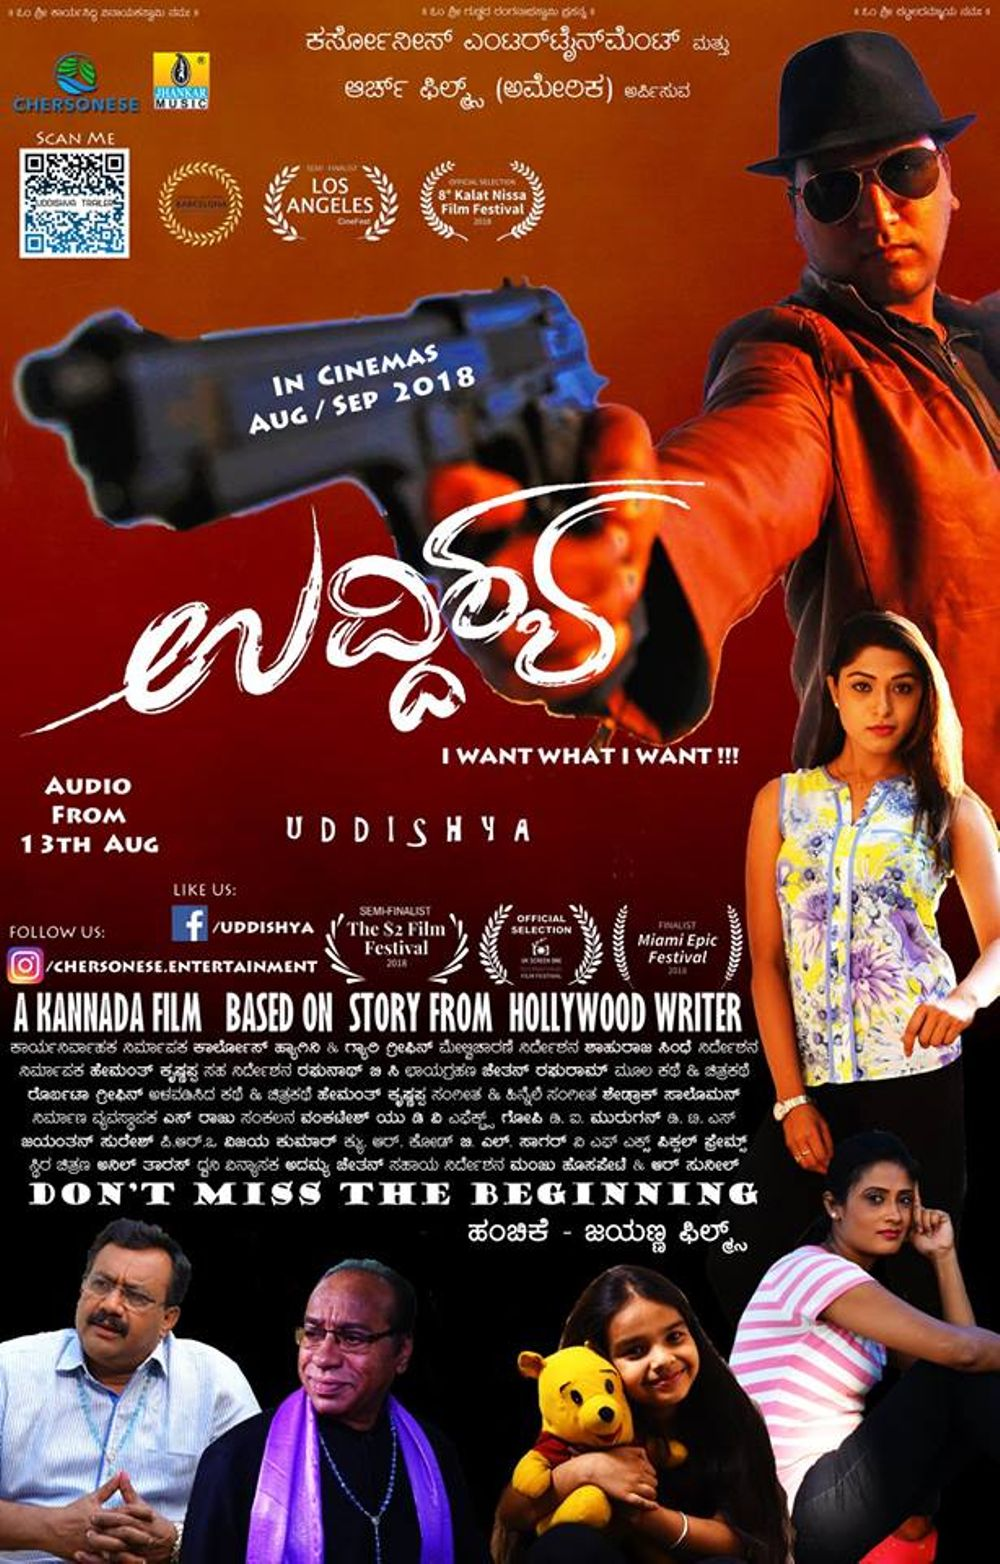 Uddishya Movie Review Kannada Movie Review